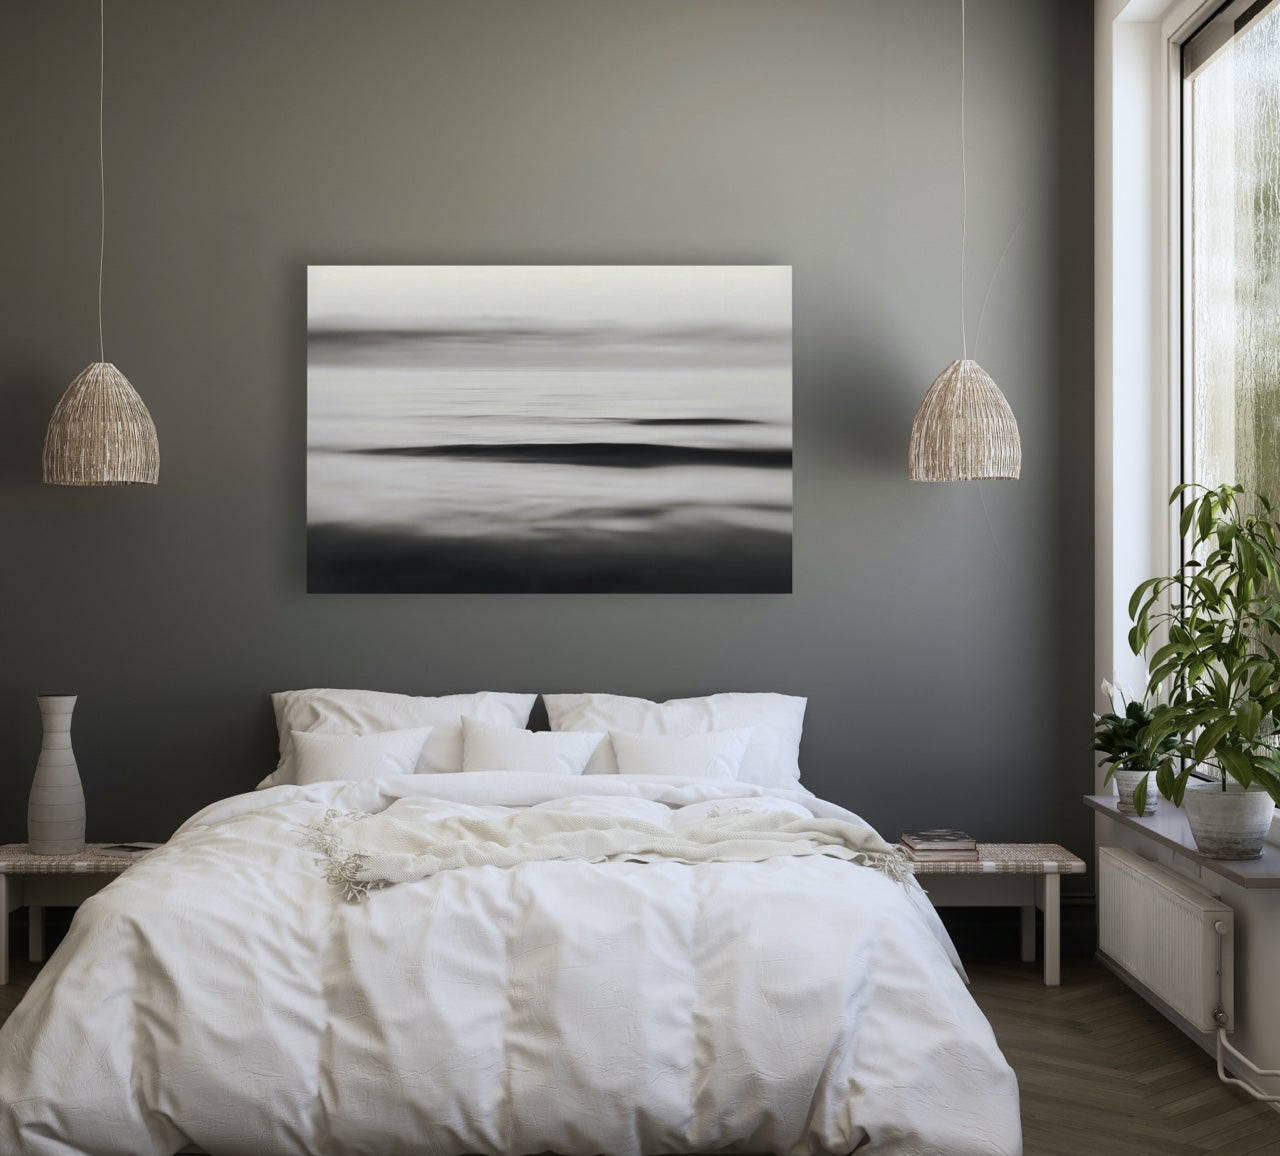 Black and white abstract art in bedroom